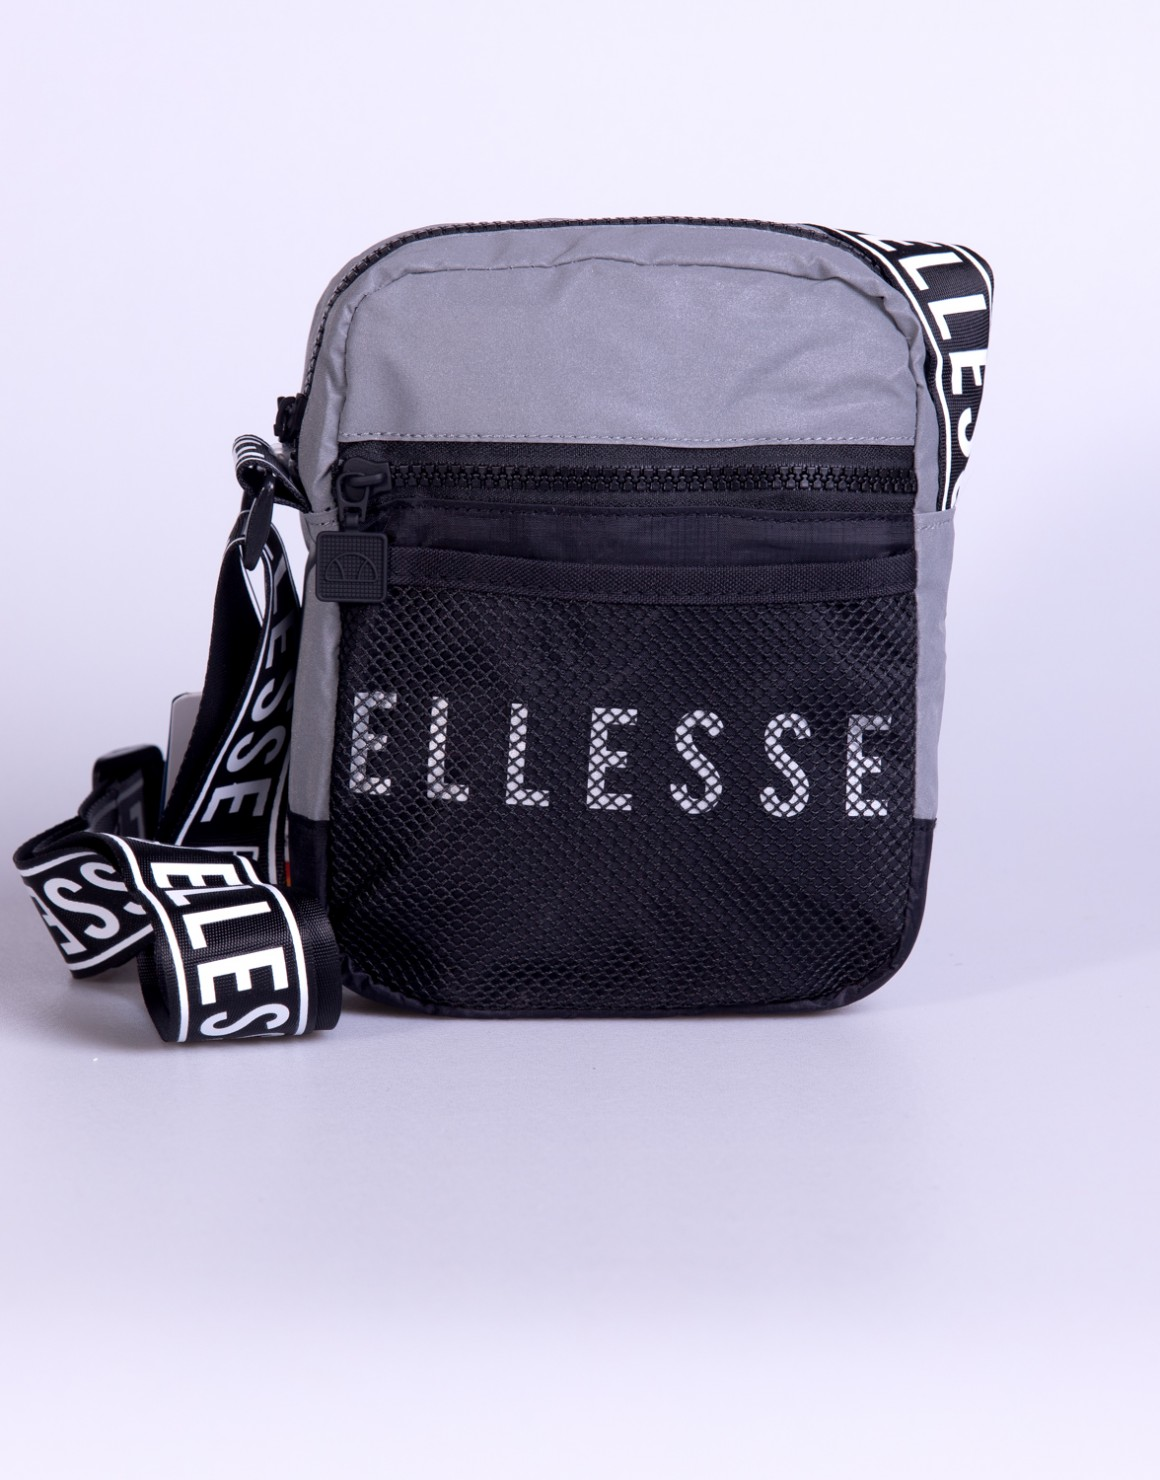 El Cresp Cross Body Bag